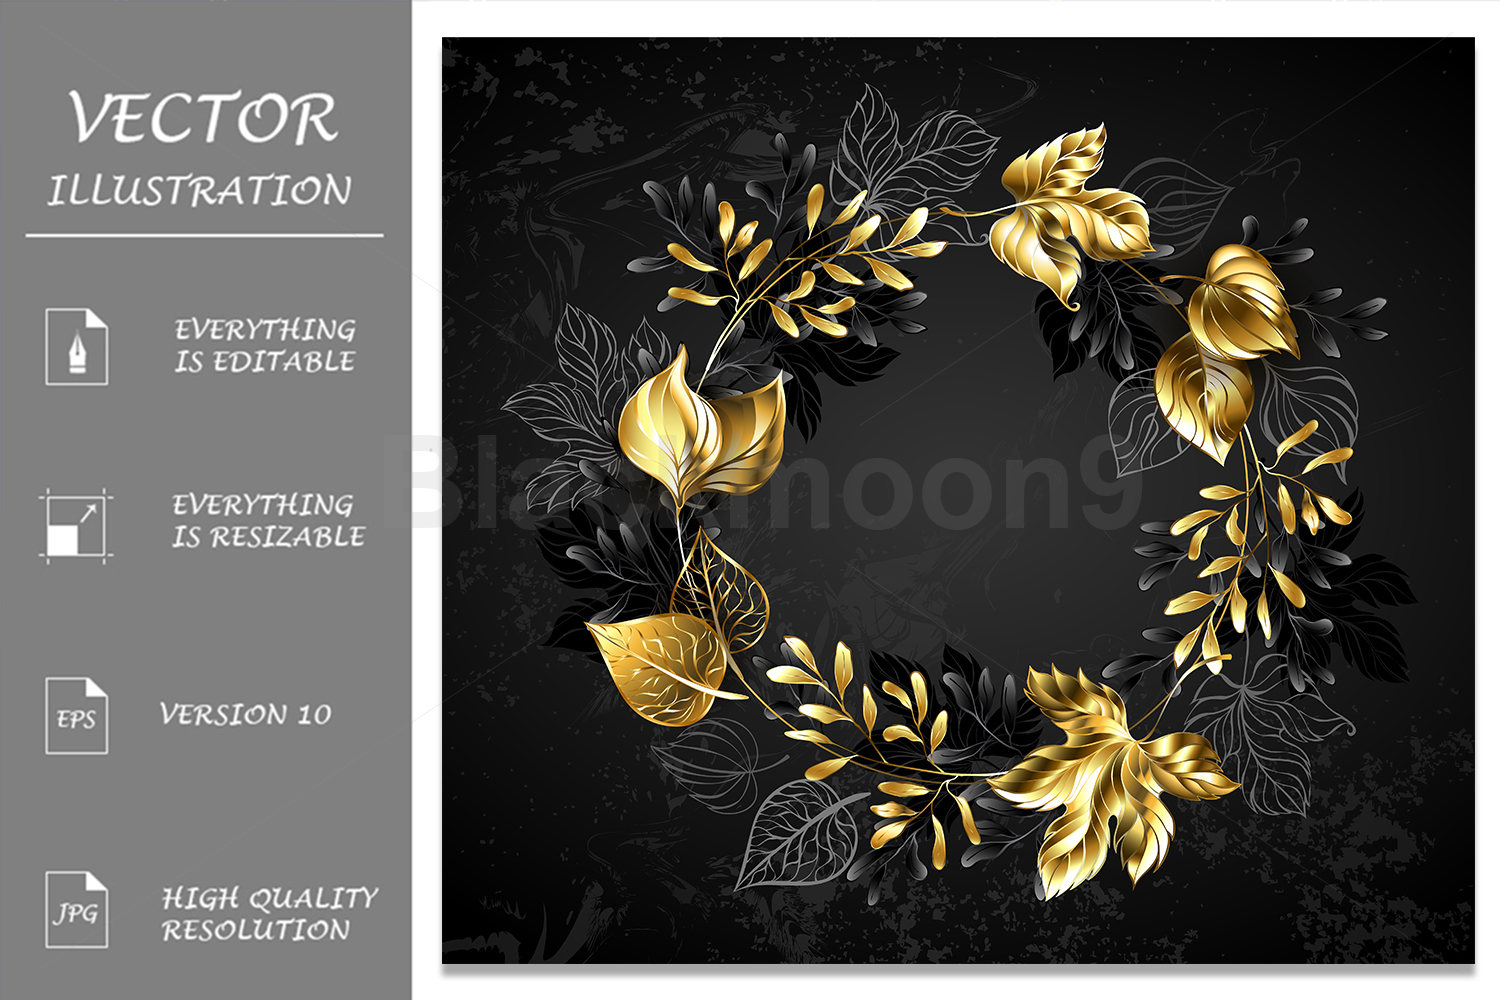 Wreath of Golden Leaves and Branches example image 1